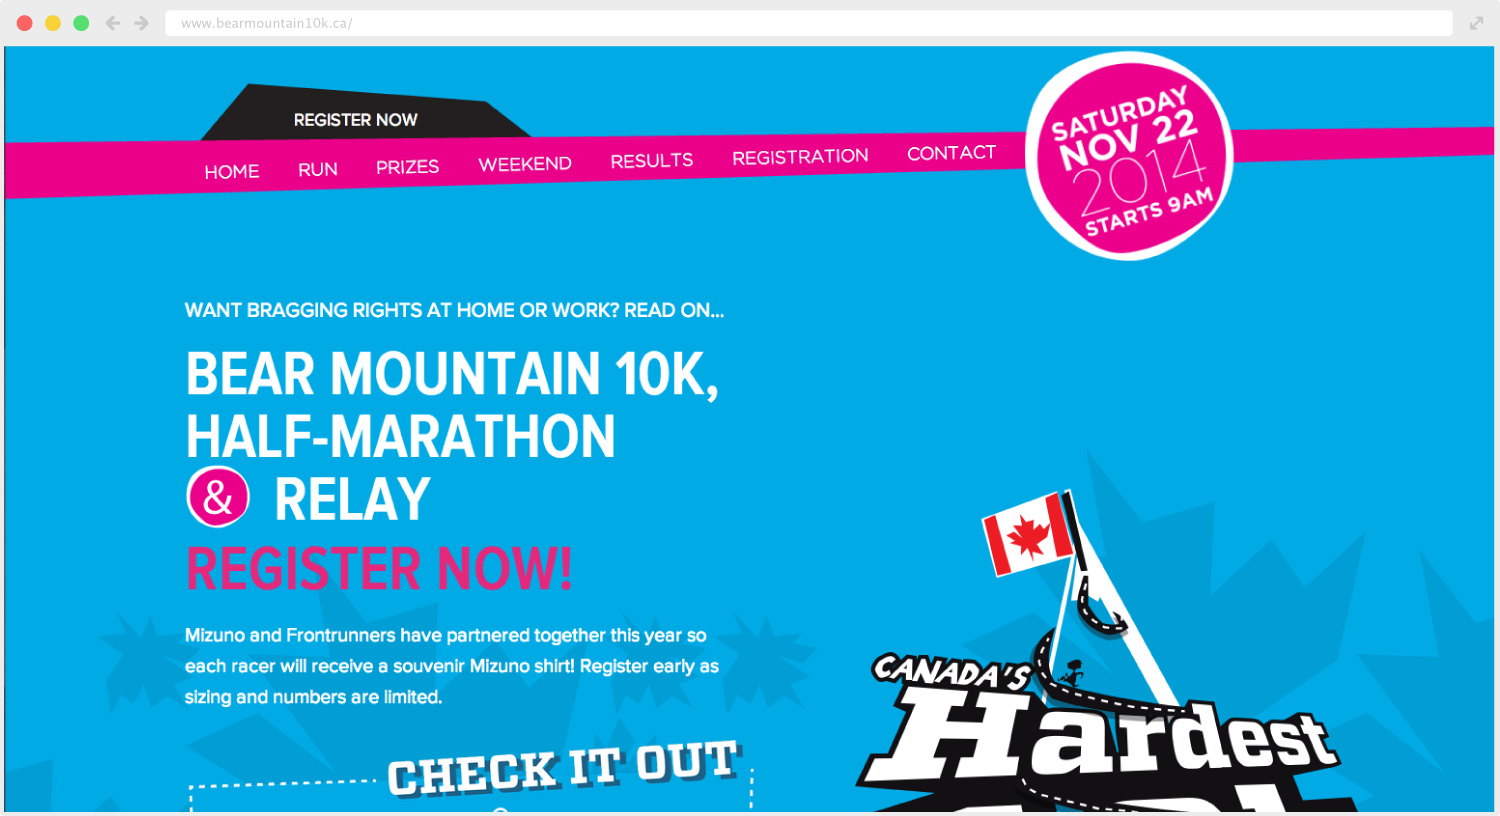 Bear Mountain 10k website design